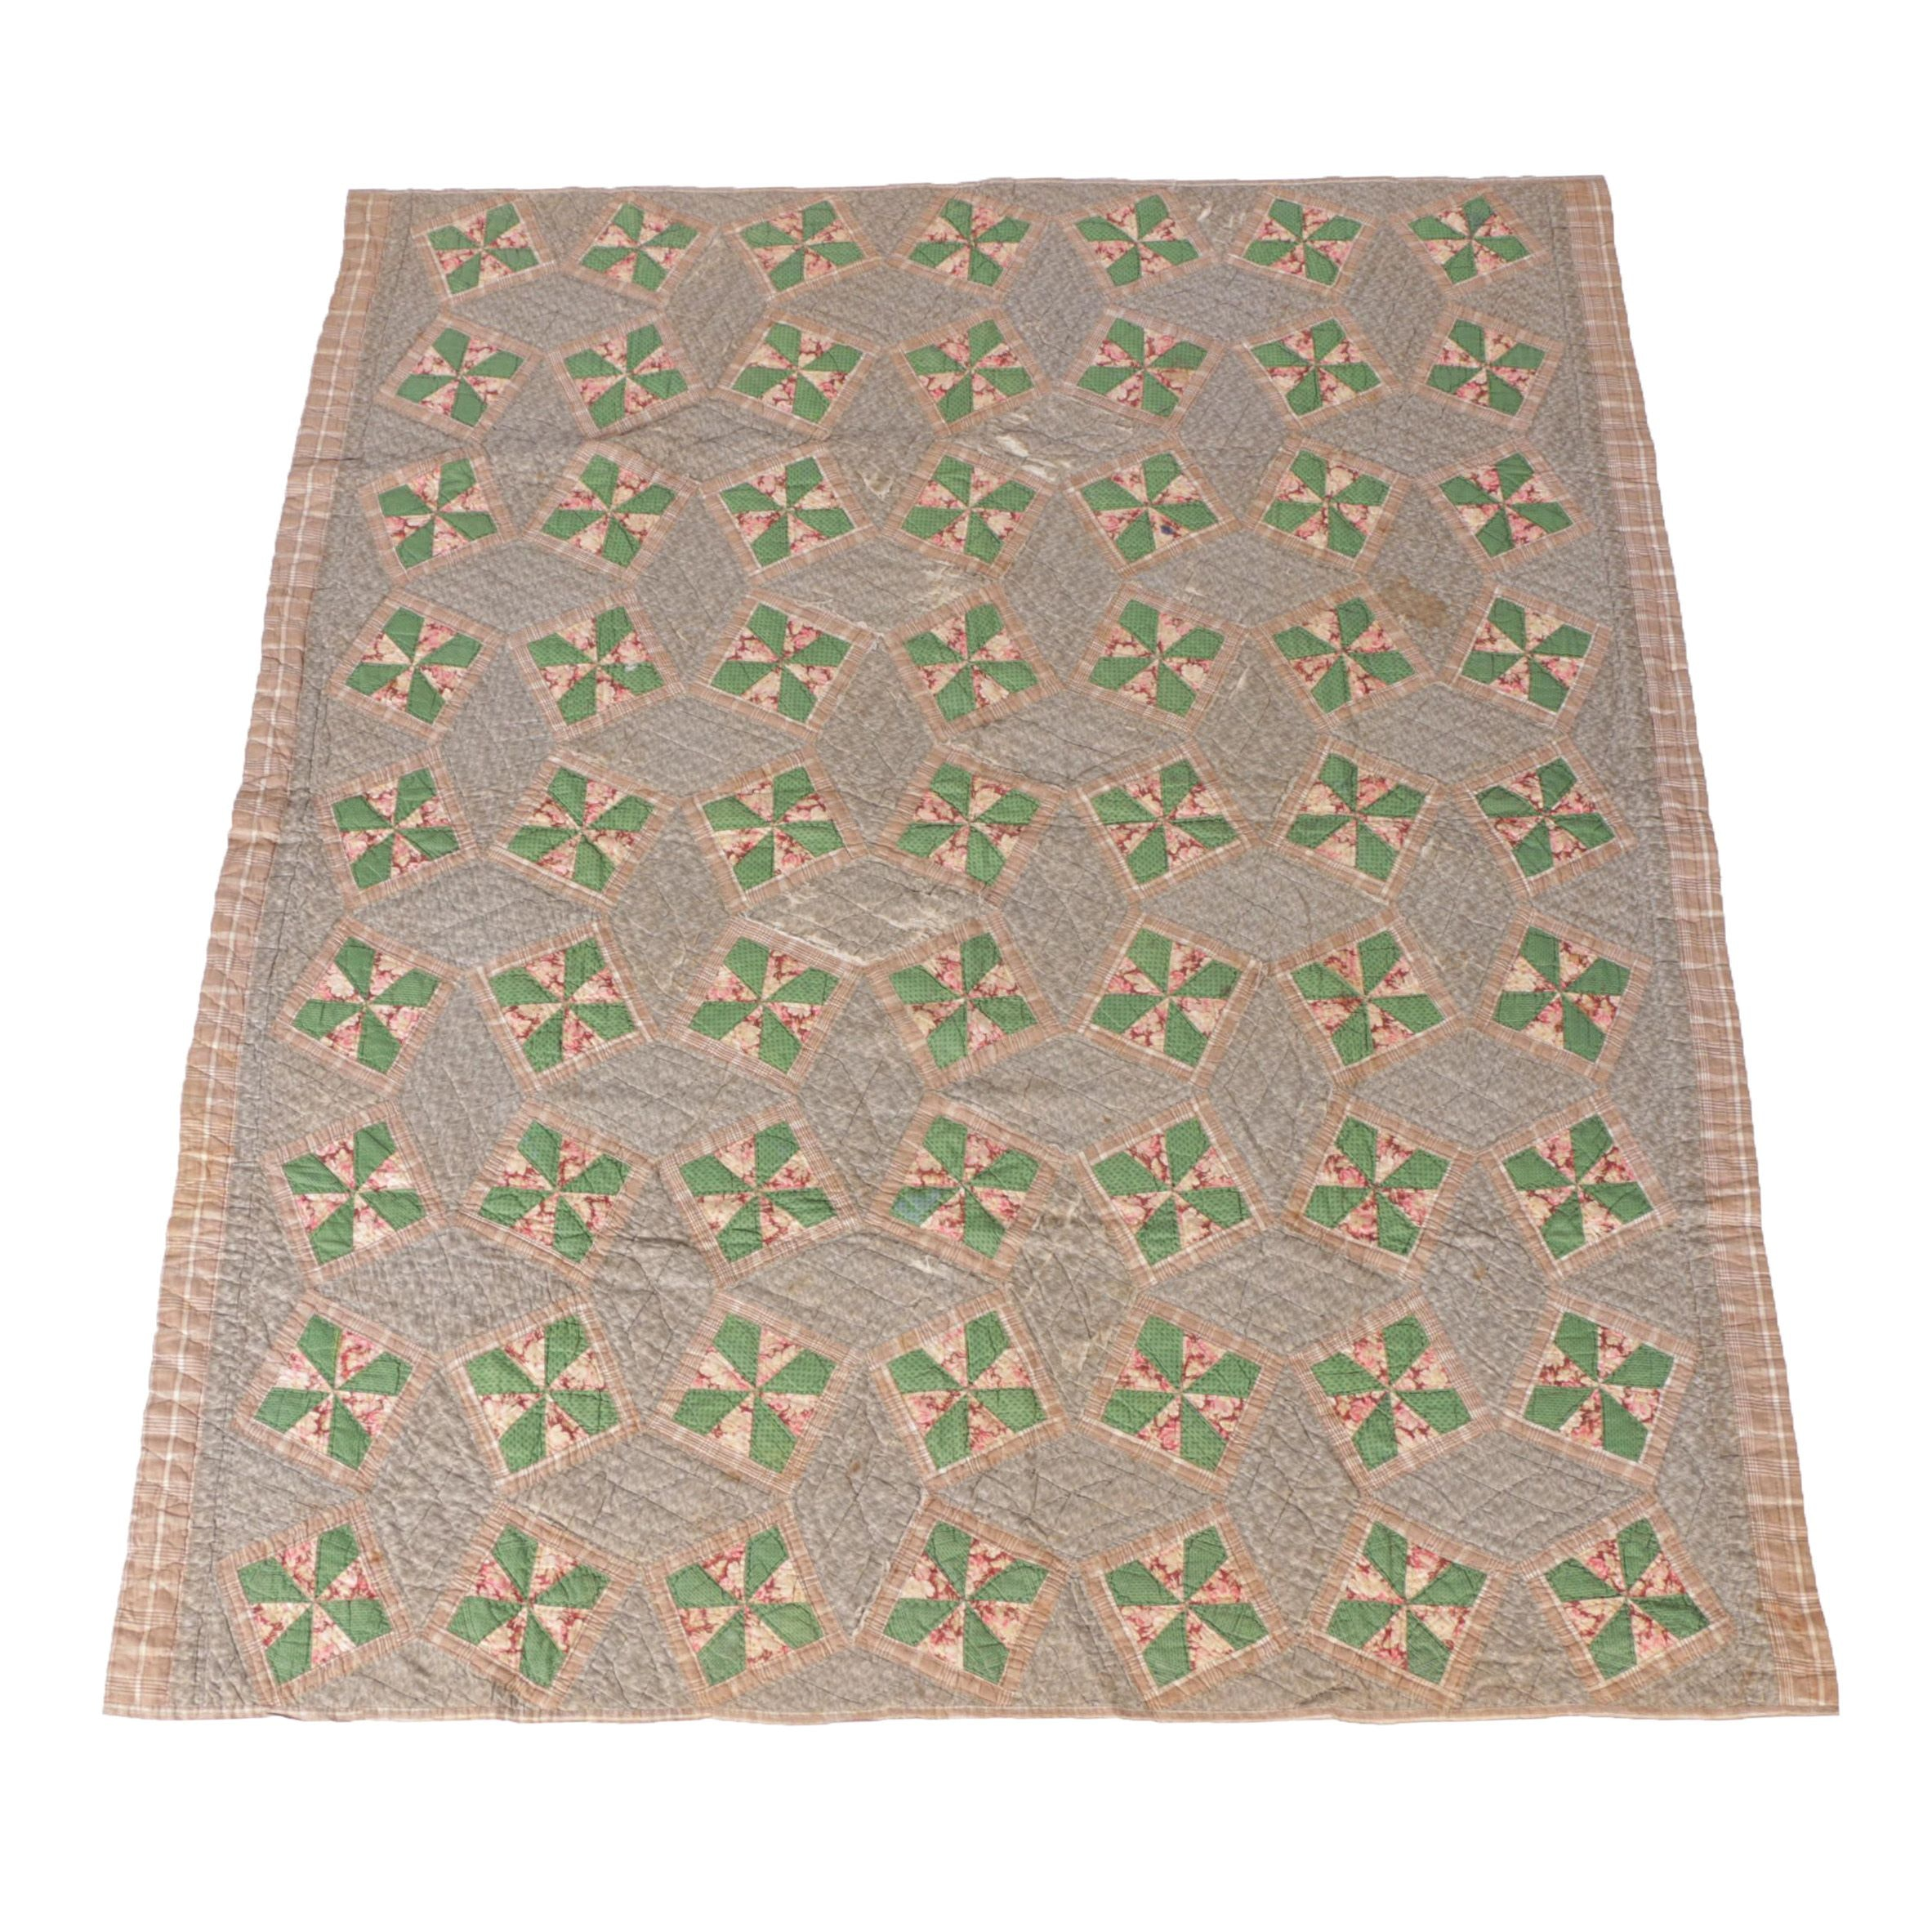 Antique Handmade Green And Brown Block Quilt